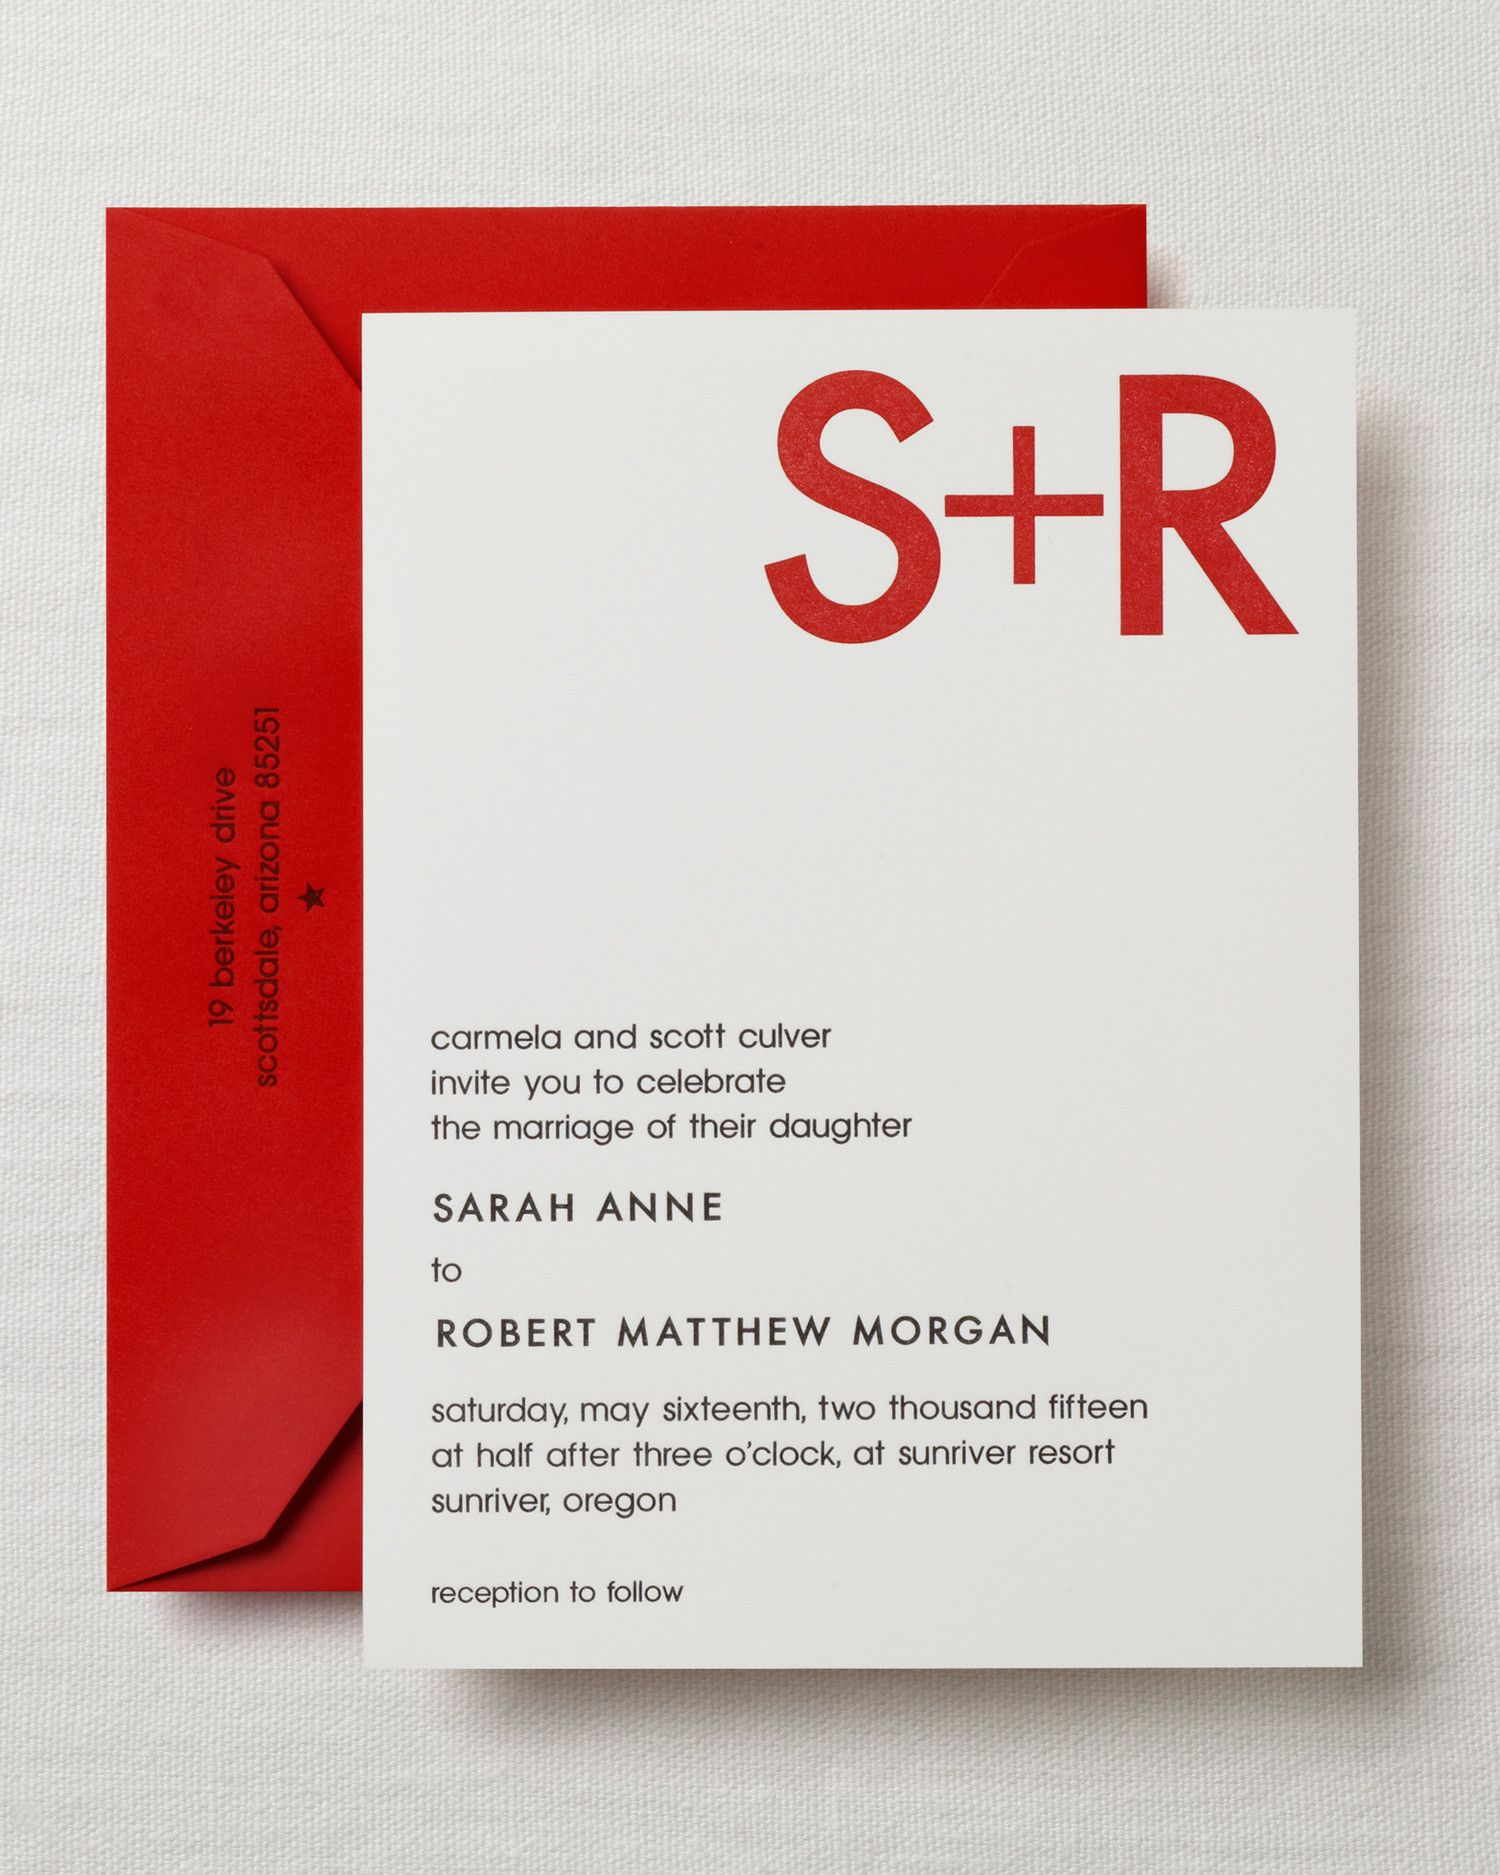 30 Modern Wedding Invitations We Love | Modern, Invitation paper and ...